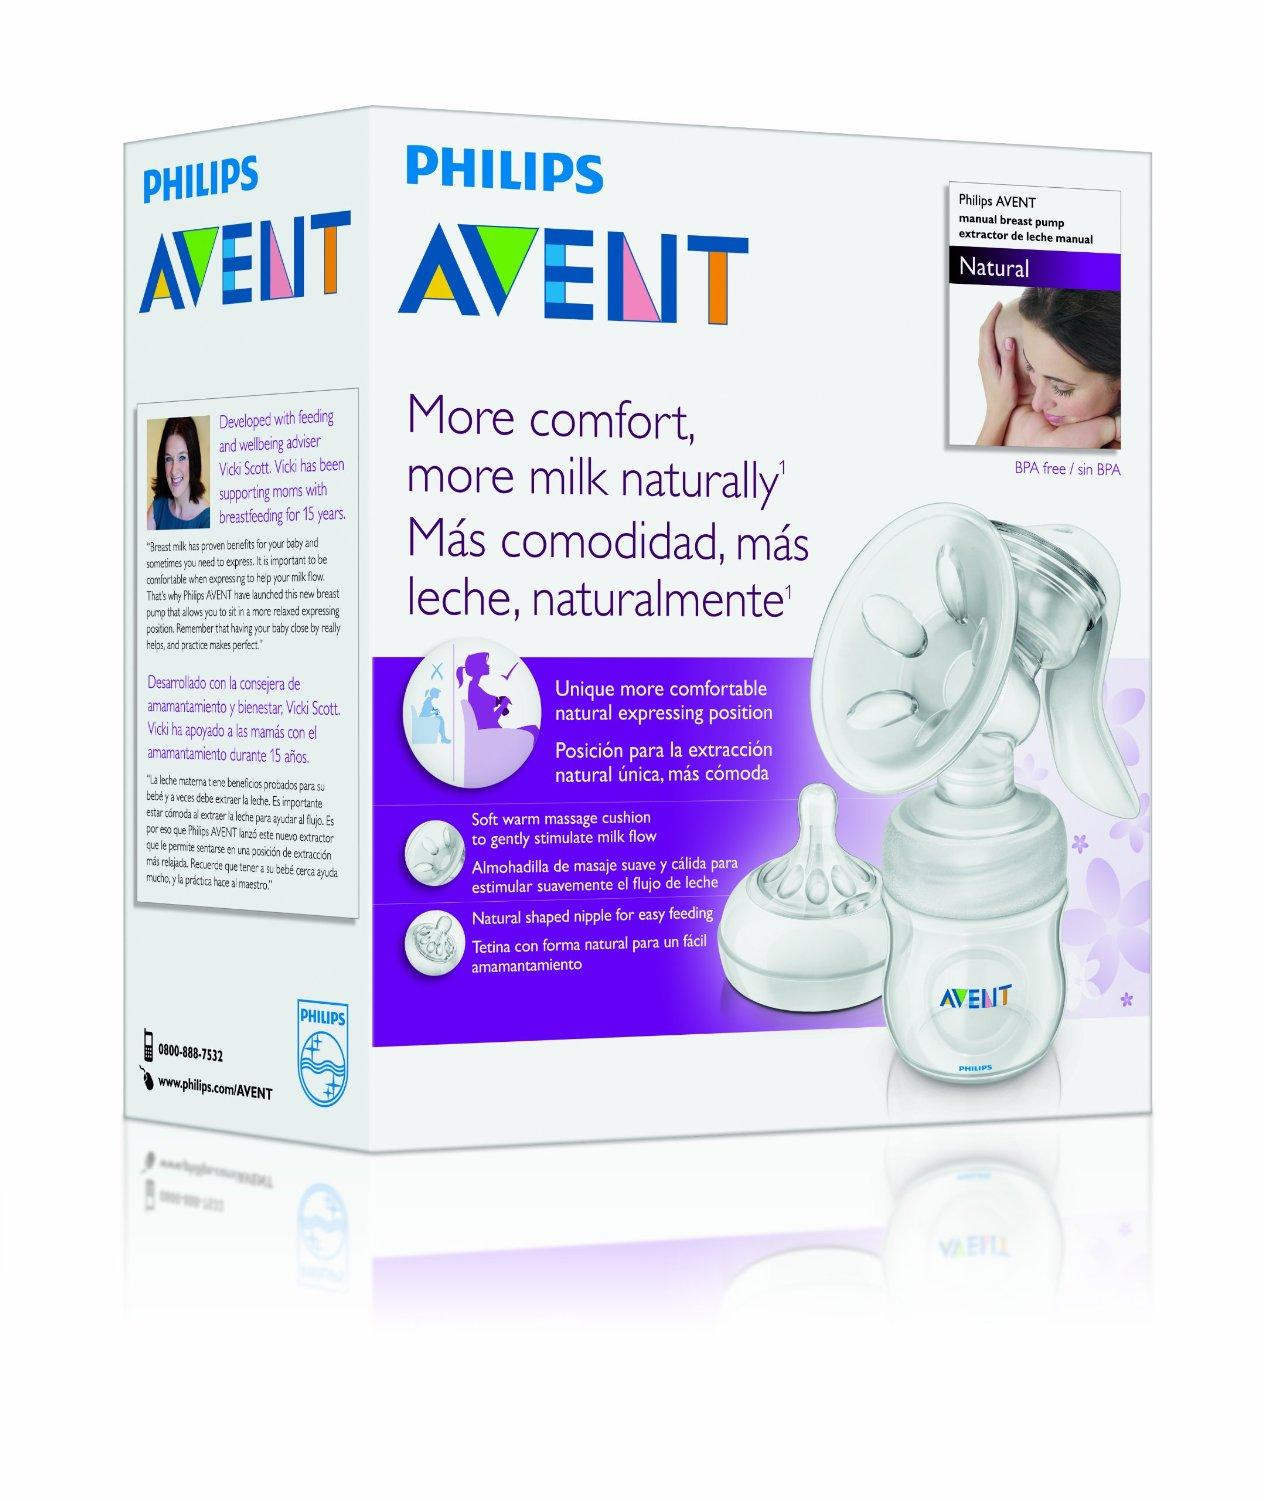 Opinion, Avent breast pump via that